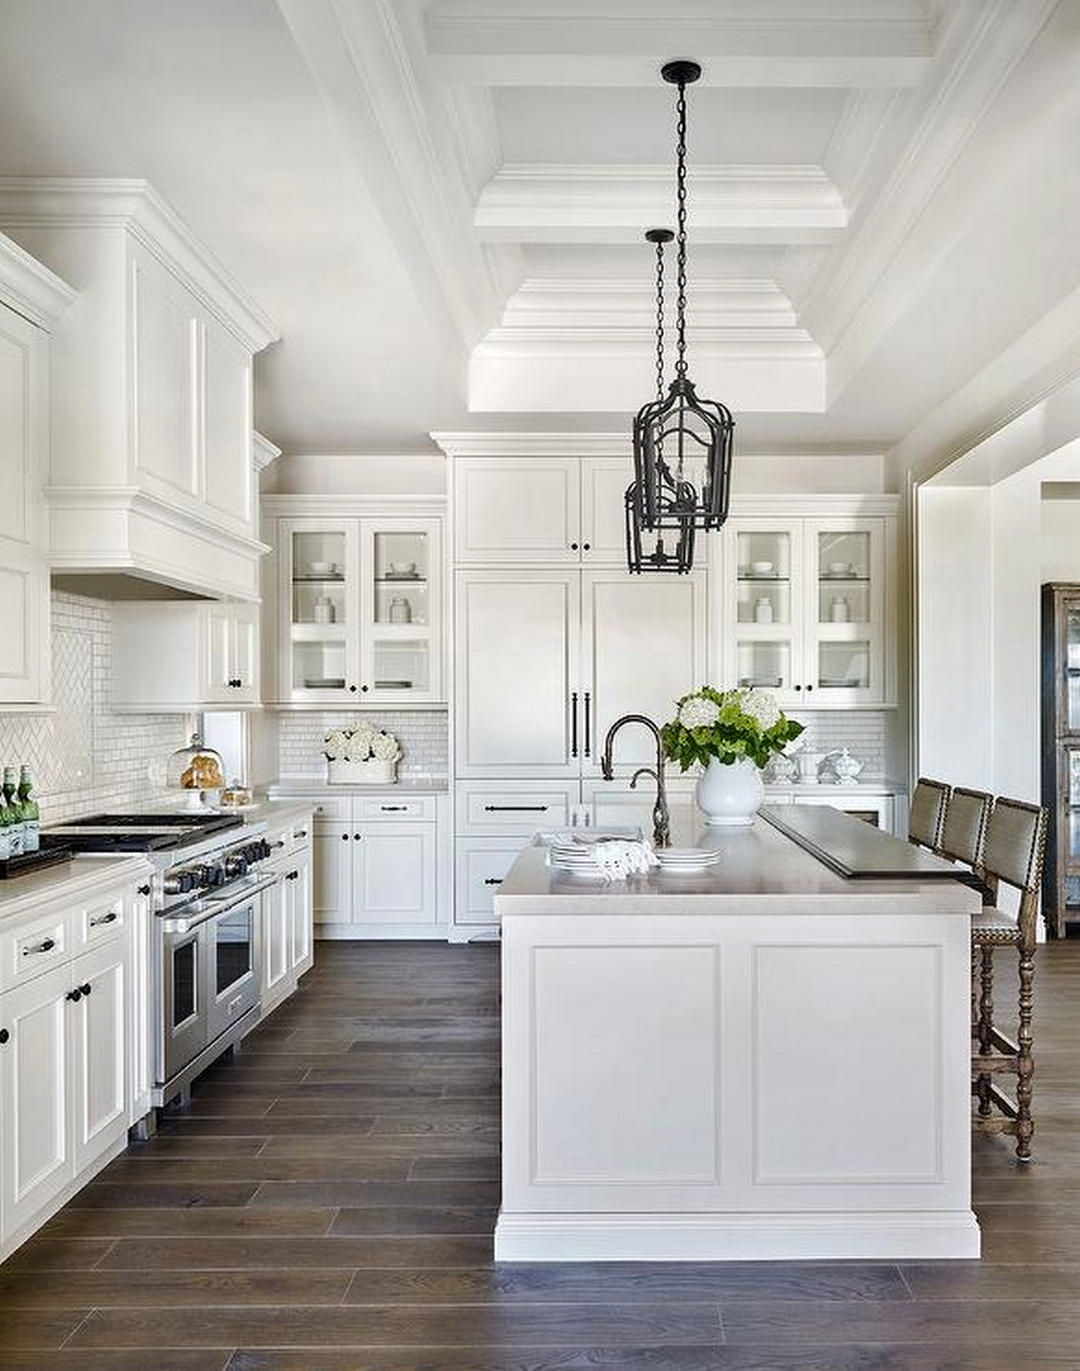 10 Kitchen And Home Decor Items Every 20 Something Needs: Why White Kitchen Interior Is Still Great For 2019